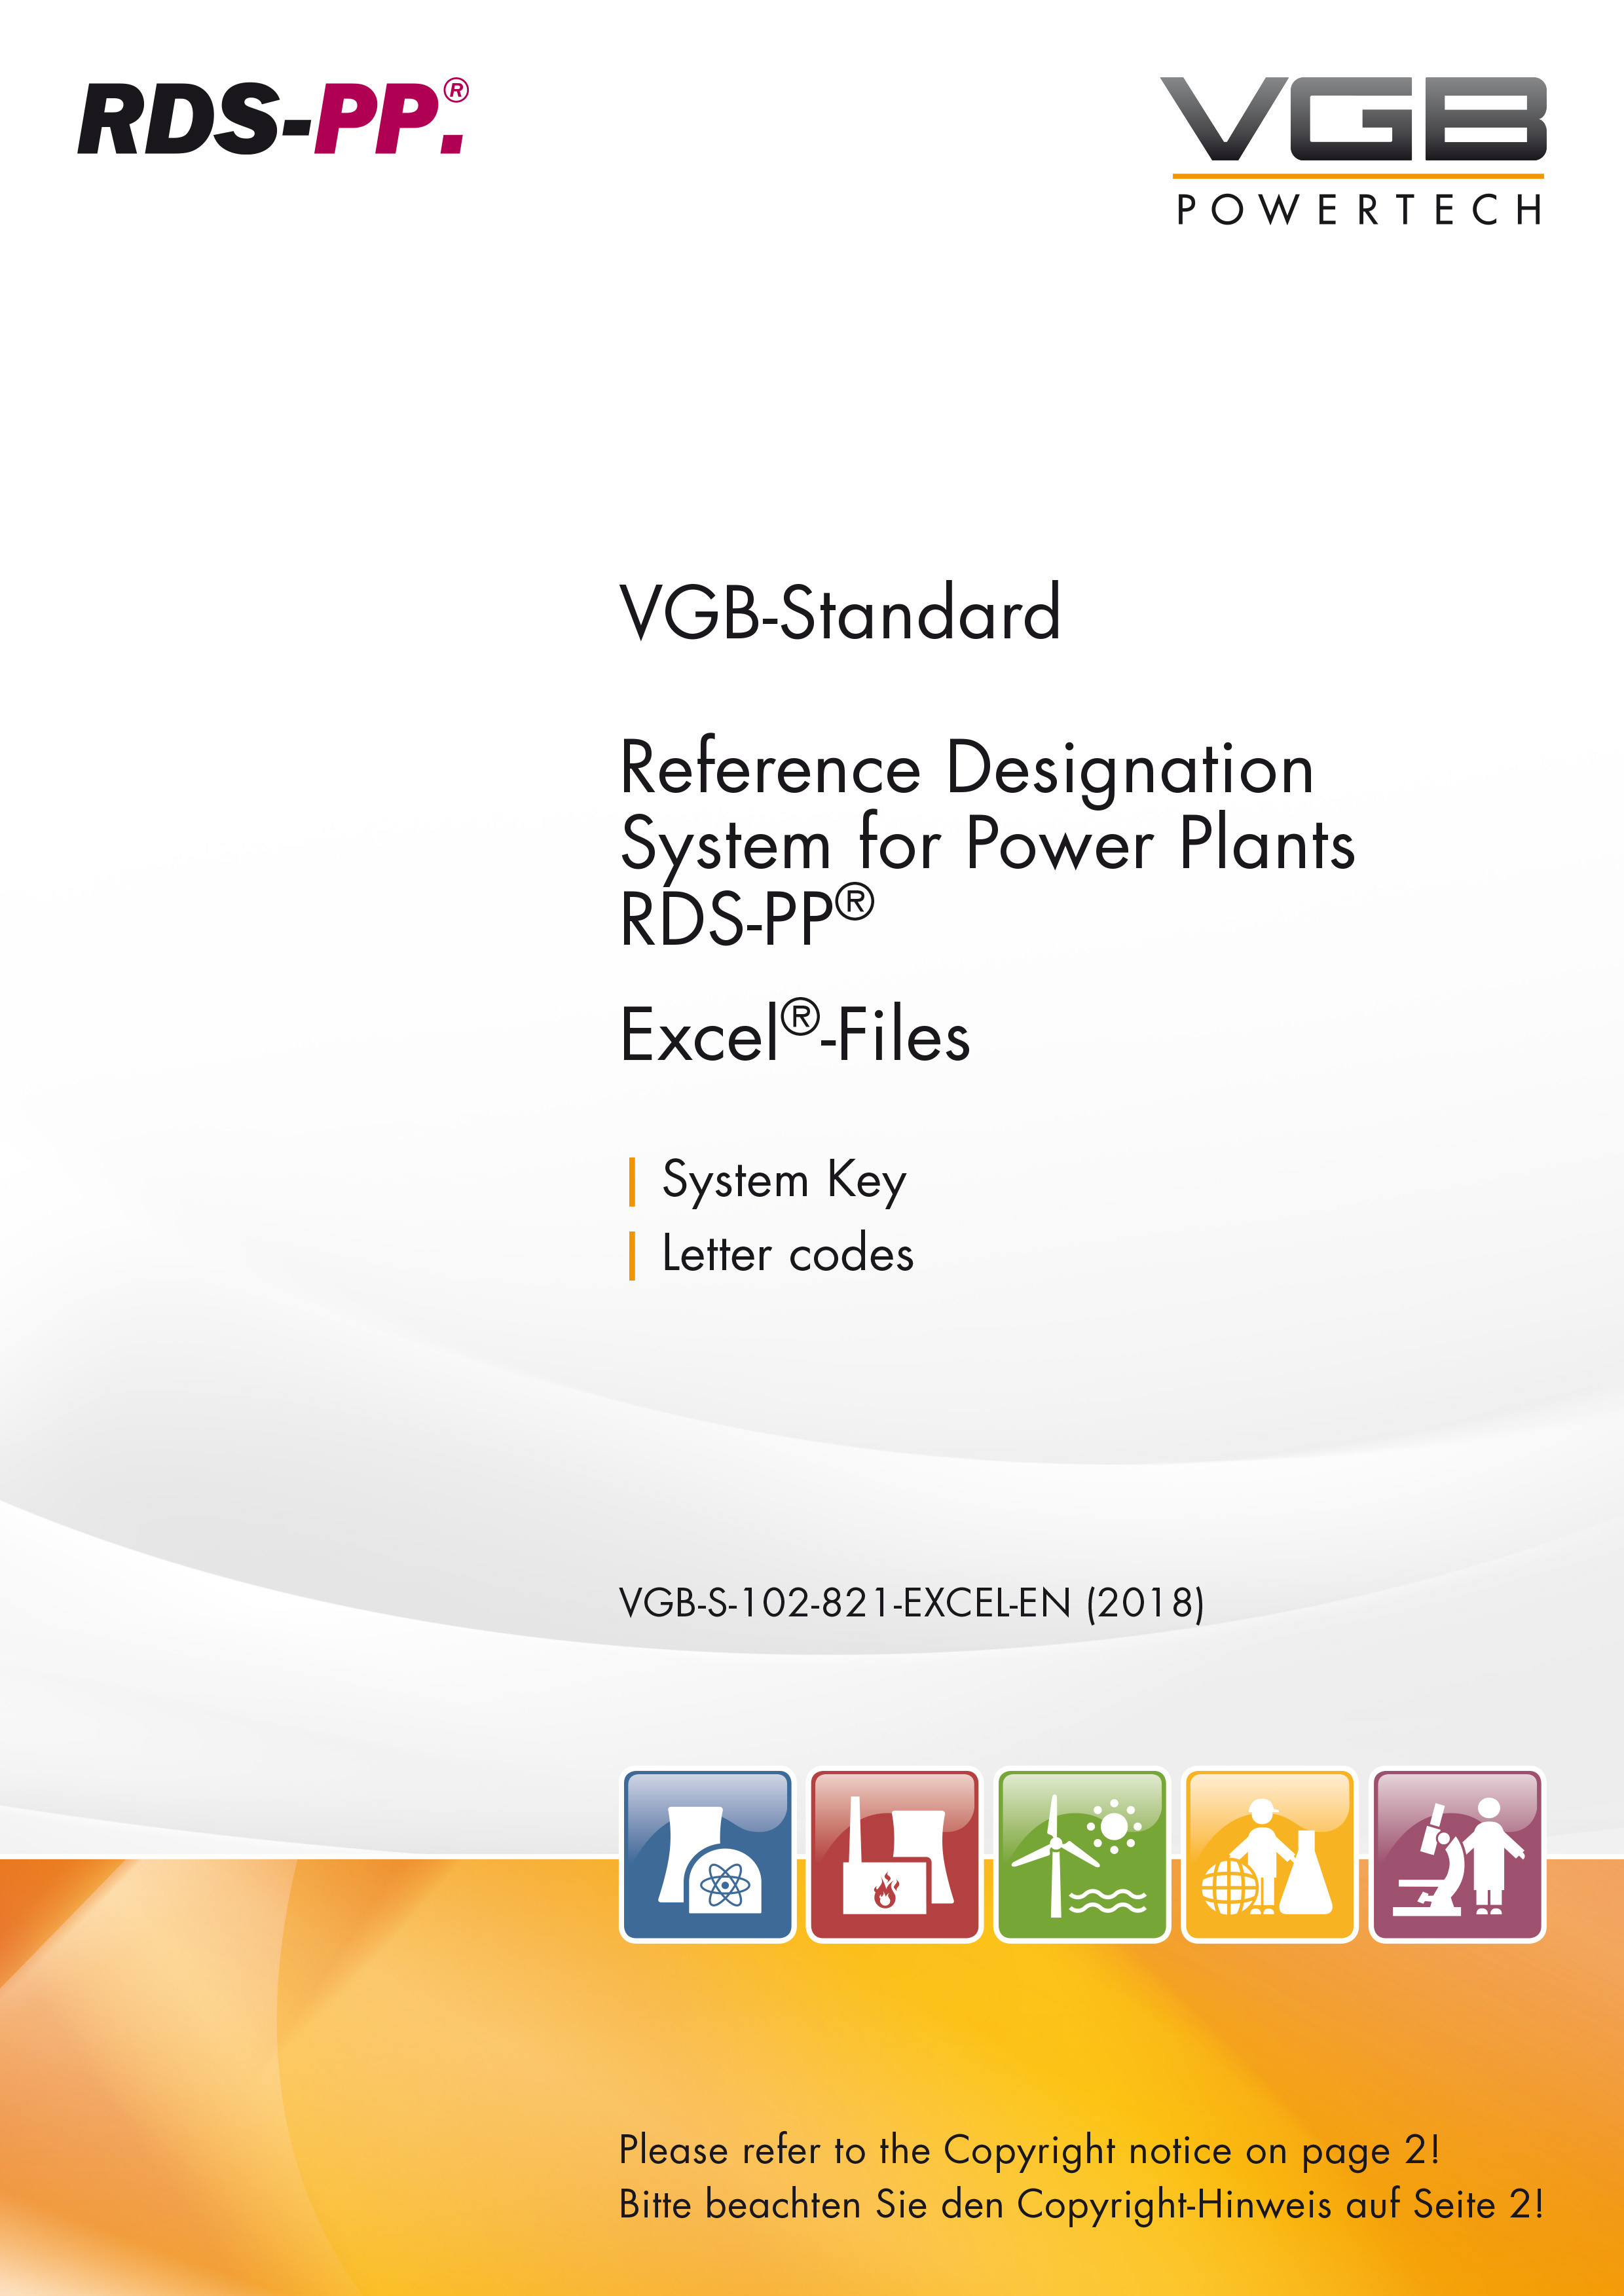 RDS-PP®  Reference Designation System for Power Plants - Letter Code for Power Plant Systems (System Key) - Excel-table